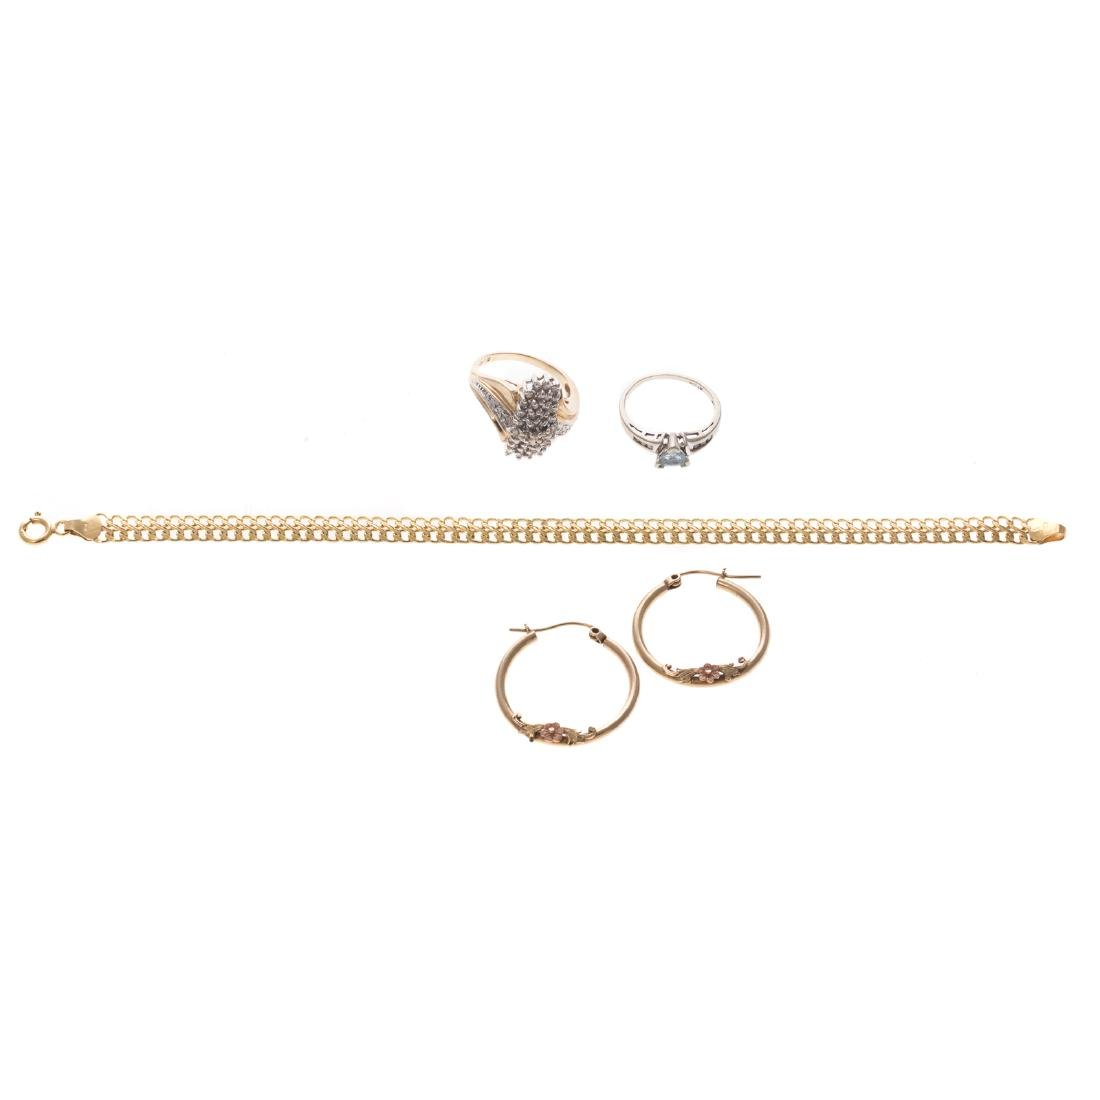 A Selection of Lady's Jewelry in 14K & 10K Gold